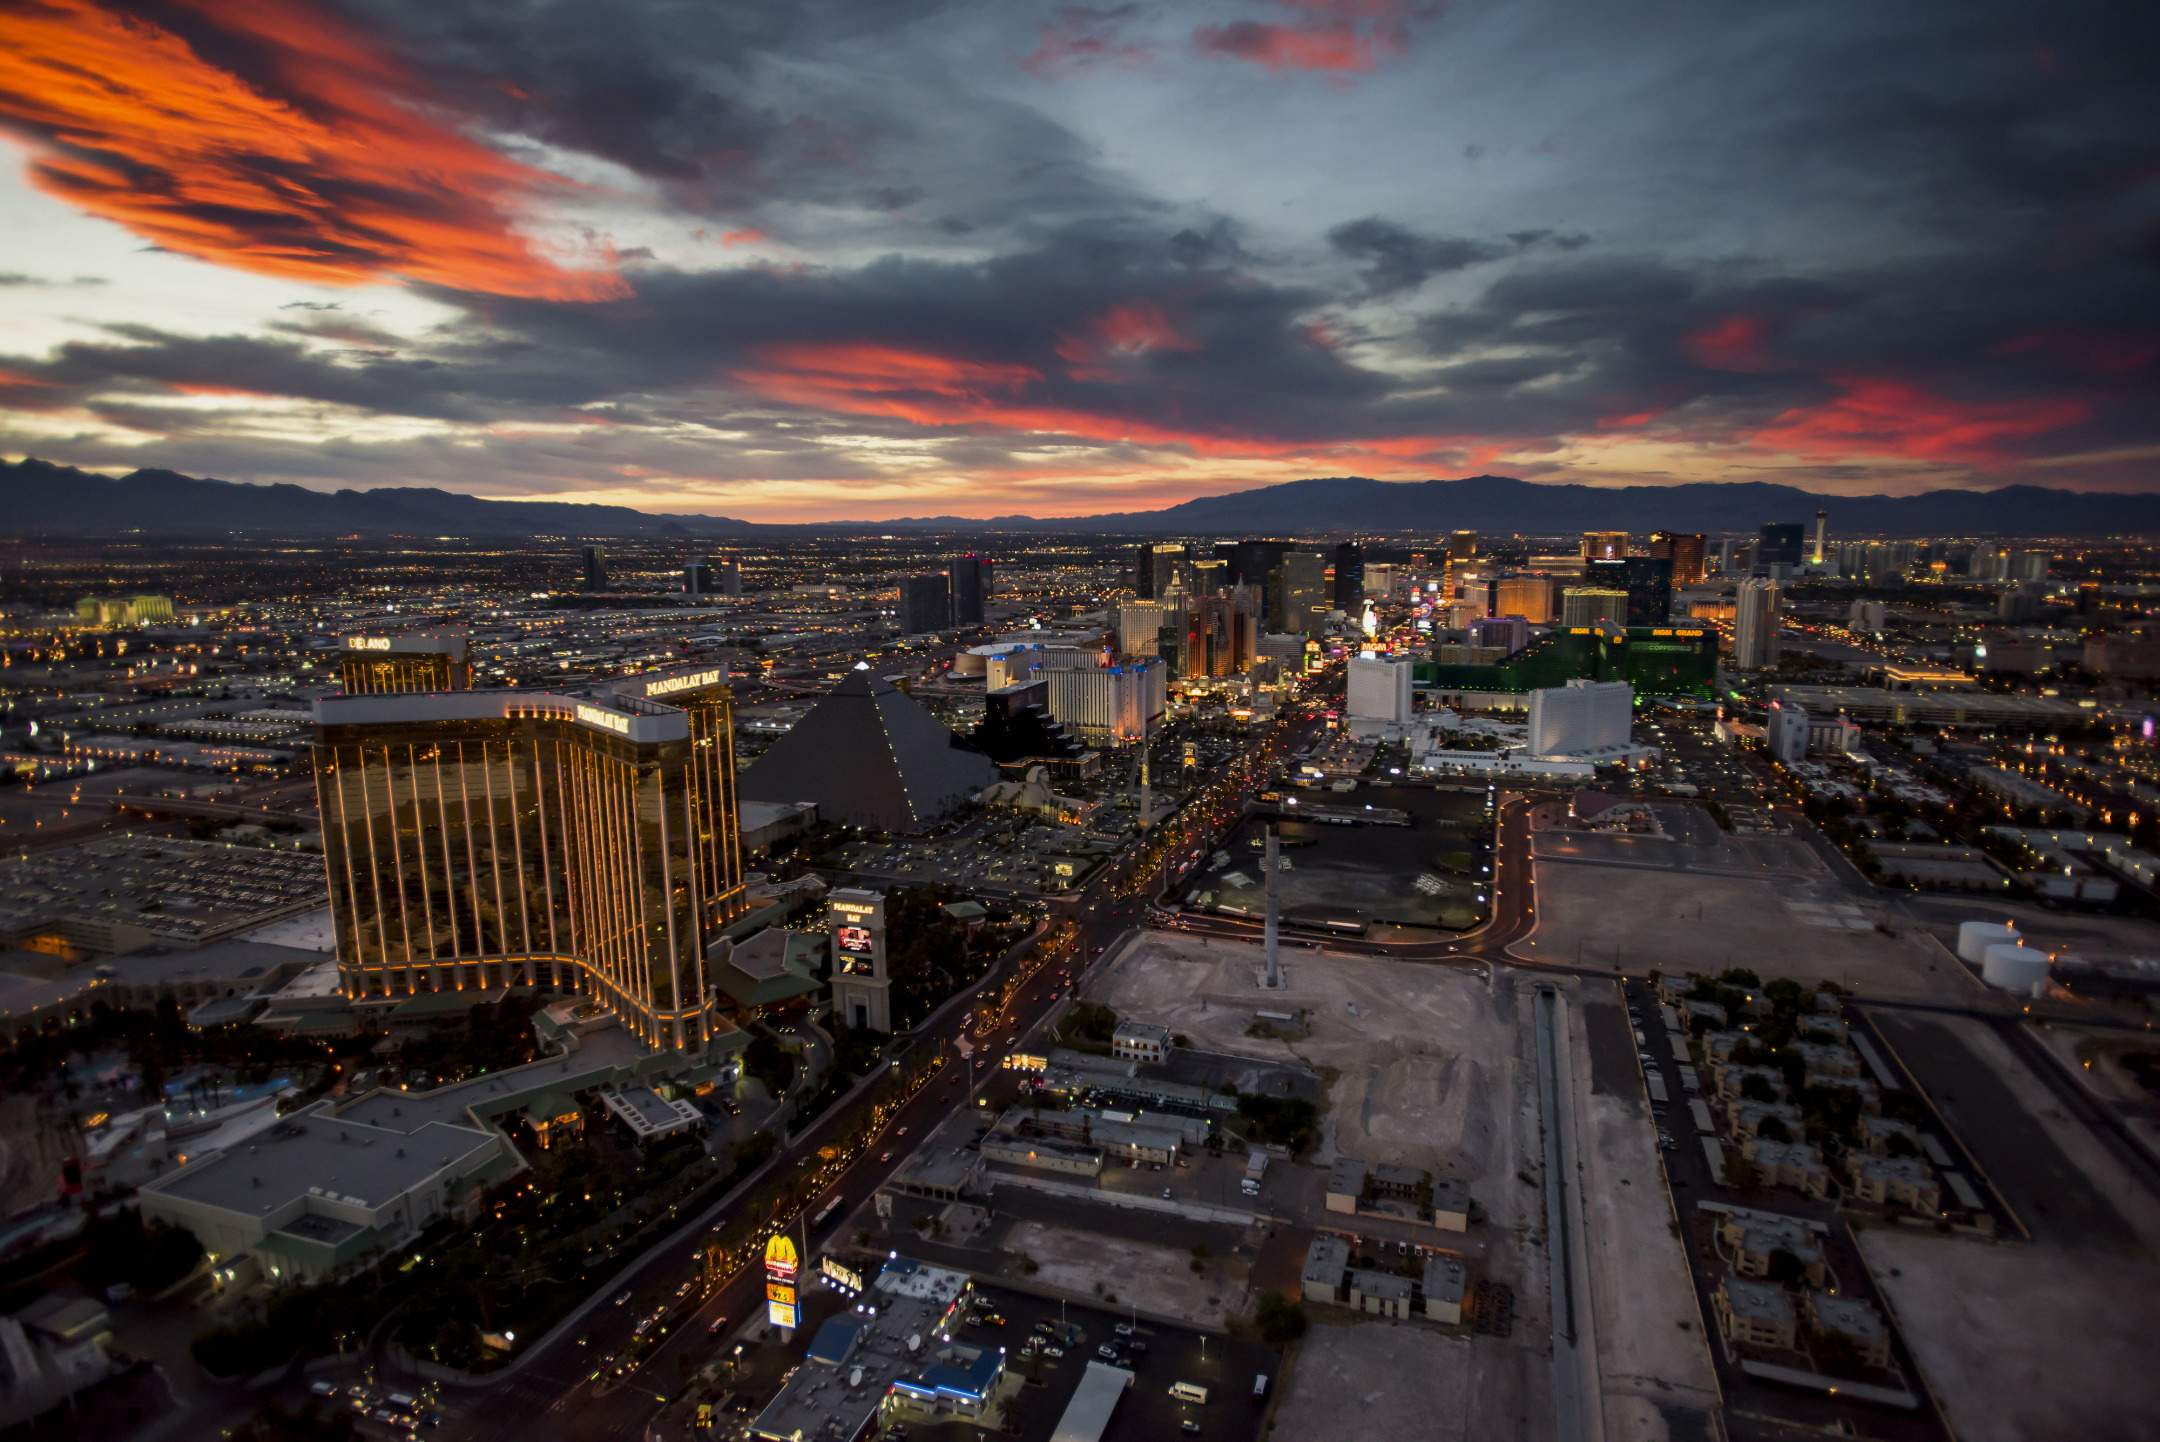 Ten Things I Never Knew About Las Vegas Until I Ran A High Roller